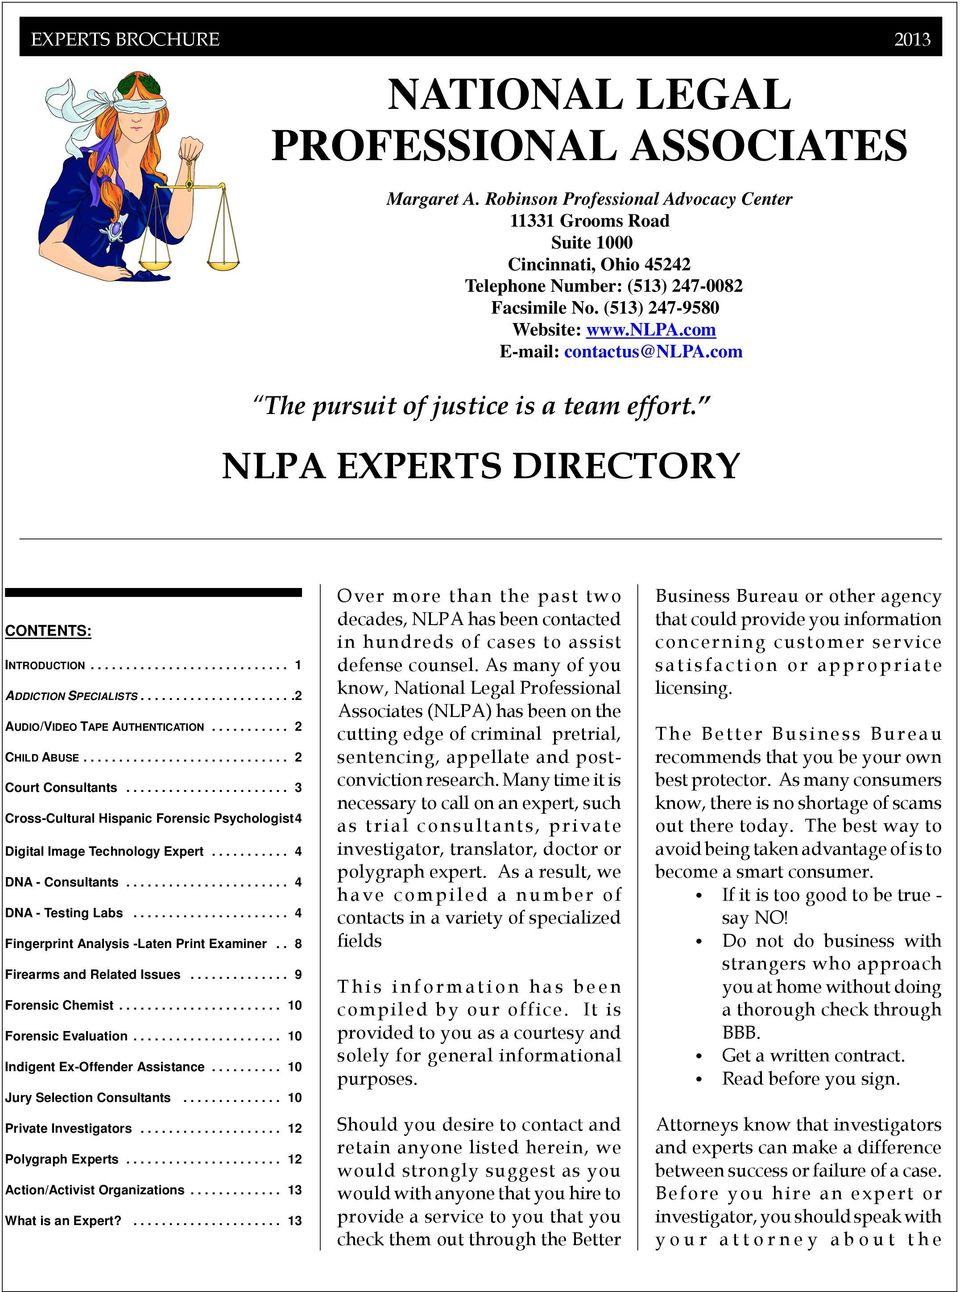 com The pursuit of justice is a team effort. NLPA EXPERTS DIRECTORY CONTENTS: INTRODUCTION... 1 ADDICTION SPECIALISTS...2 AUDIO/VIDEO TAPE AUTHENTICATION... 2 CHILD ABUSE... 2 Court Consultants.